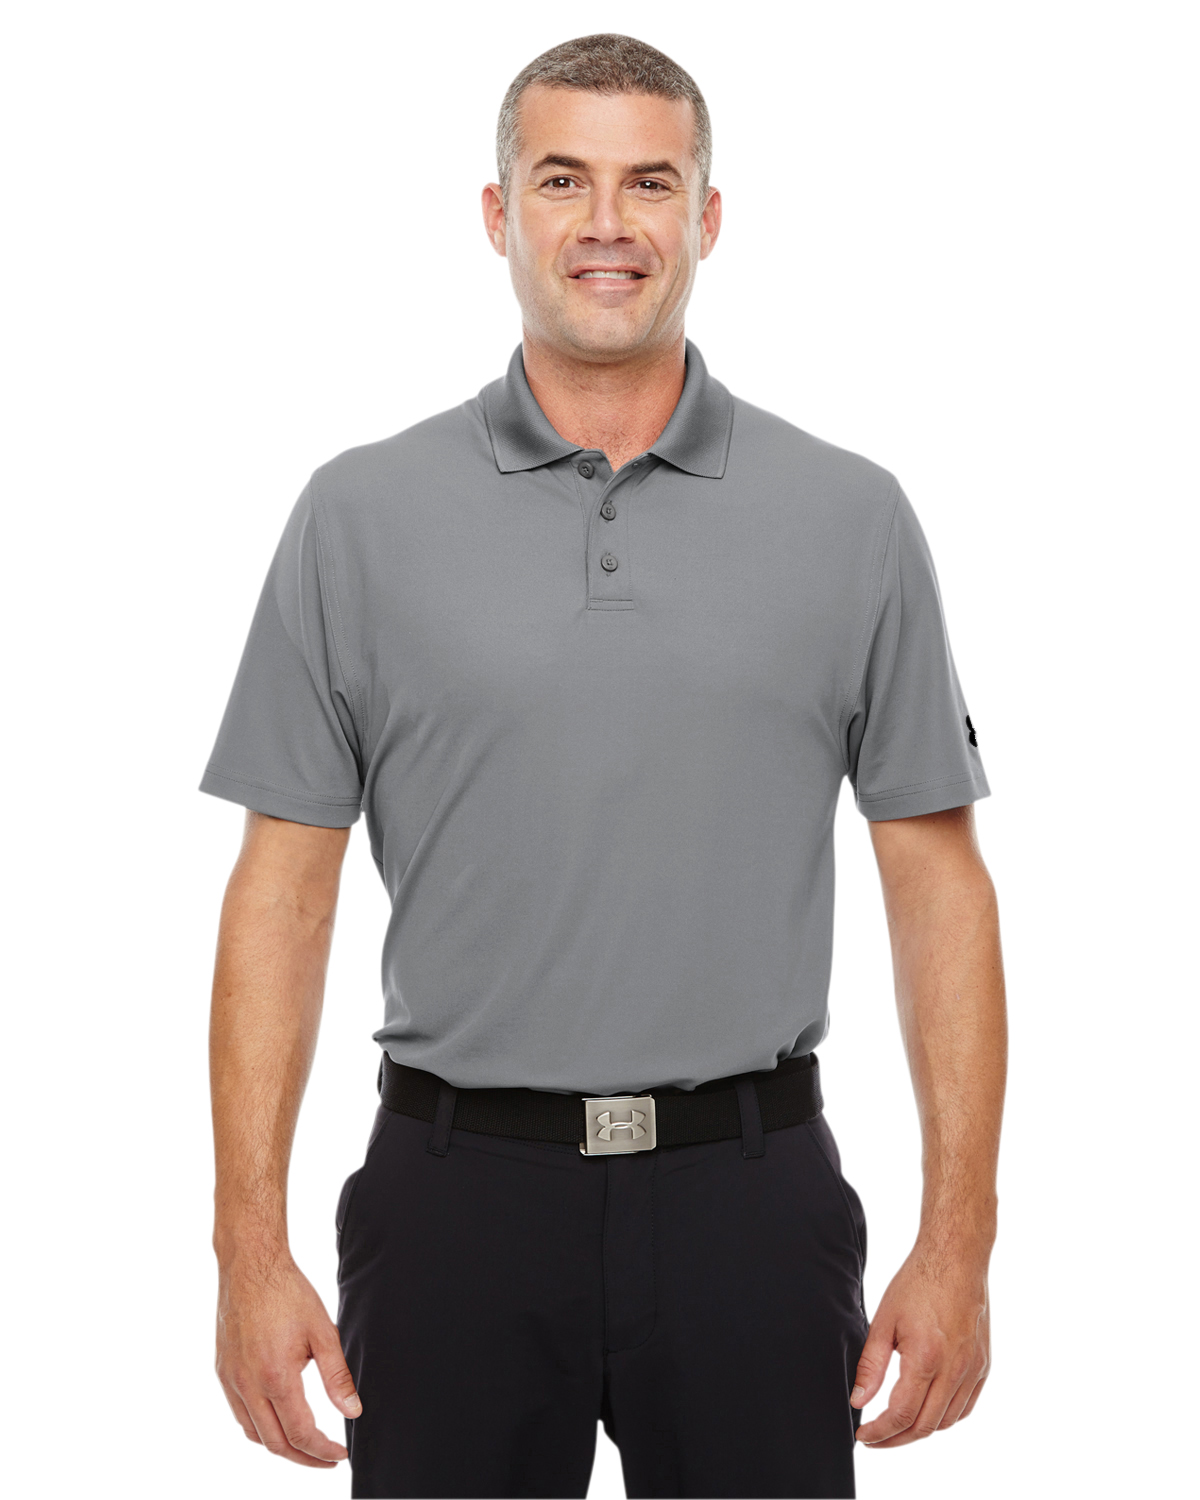 798c90615 Under Armour Men's Performance Polo. 1261172. Under Armour True Gray  Heather; Under ...